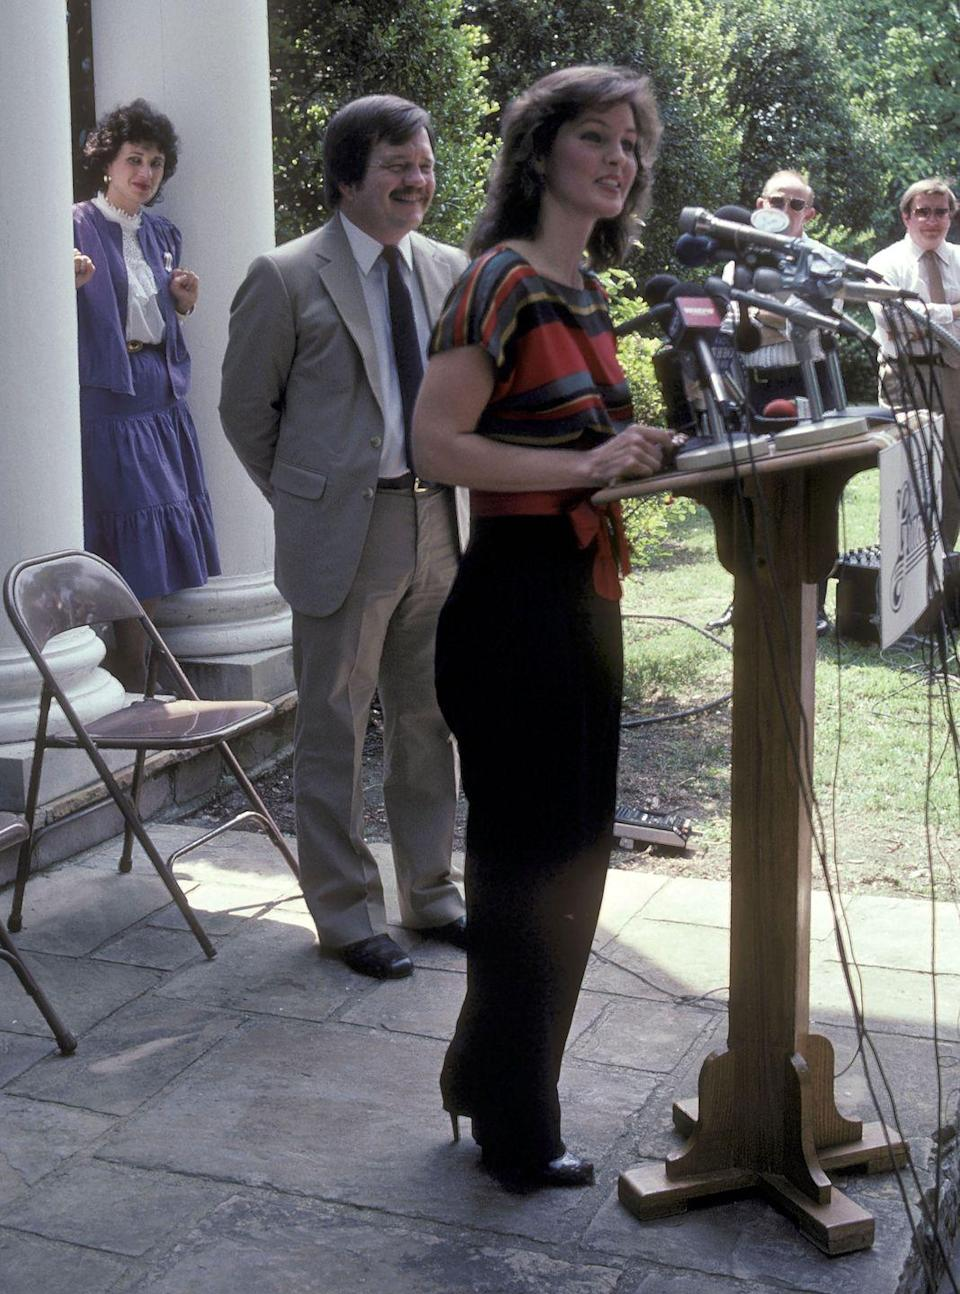 "<p>In 1982, Priscilla Presley announced that Graceland would open to the public as a memorial museum for the late singer. Priscilla was <a href=""https://www.latimes.com/archives/la-xpm-1989-06-11-tm-2866-story.html"" rel=""nofollow noopener"" target=""_blank"" data-ylk=""slk:given control of Elvis Presley Enterprises"" class=""link rapid-noclick-resp"">given control of Elvis Presley Enterprises</a> after Elvis's father's death in 1979, which she held until Lisa Marie turned 25.</p>"